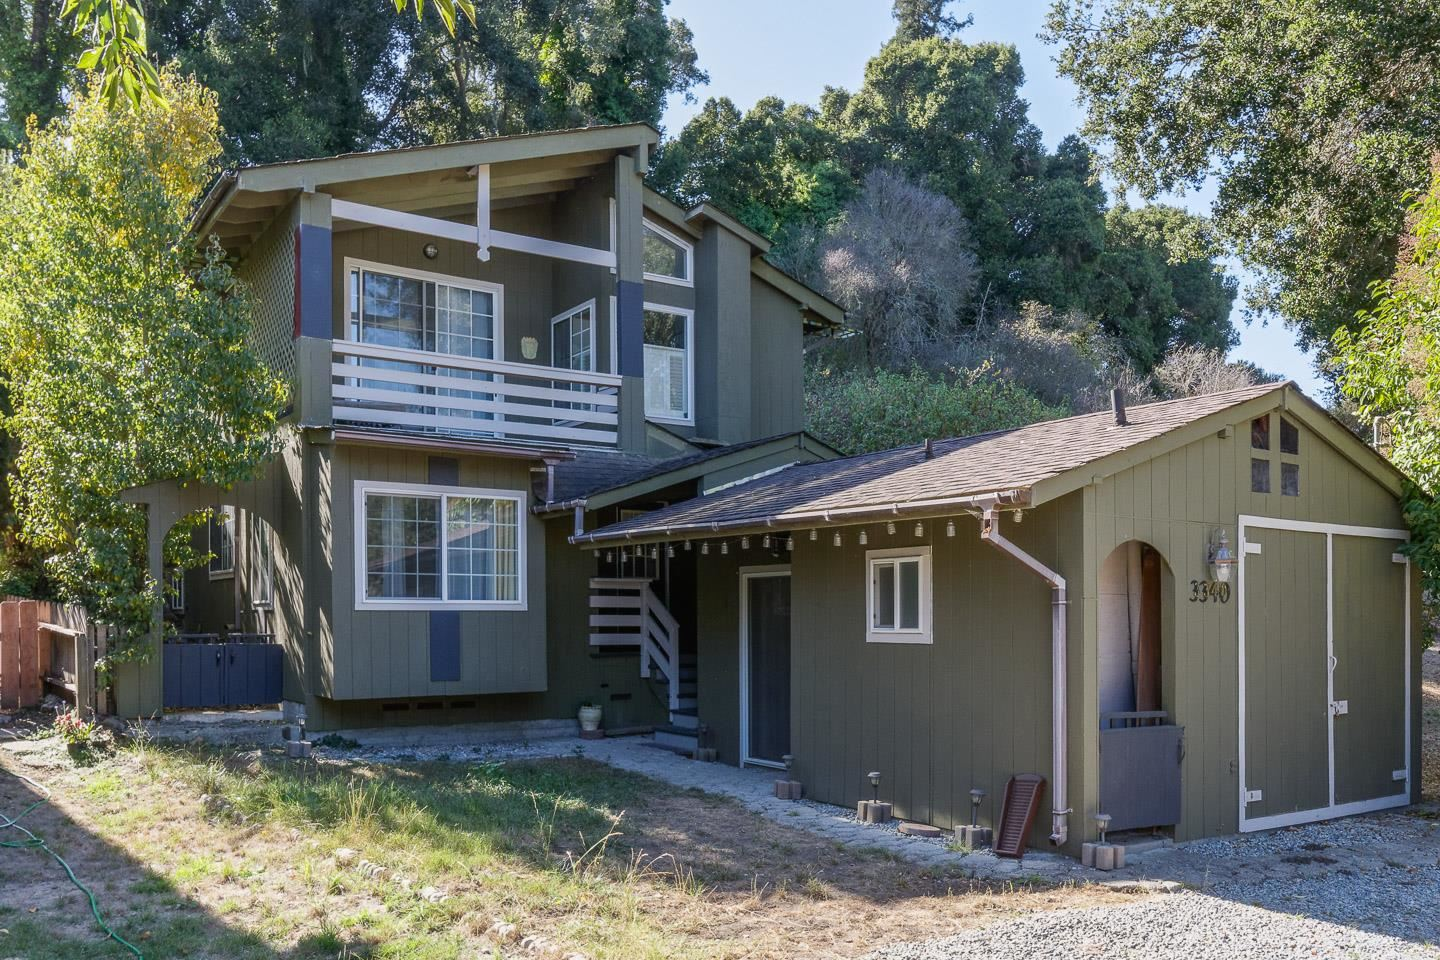 3340 S Polo DR, Aptos, CA 95003 - #: ML81774636